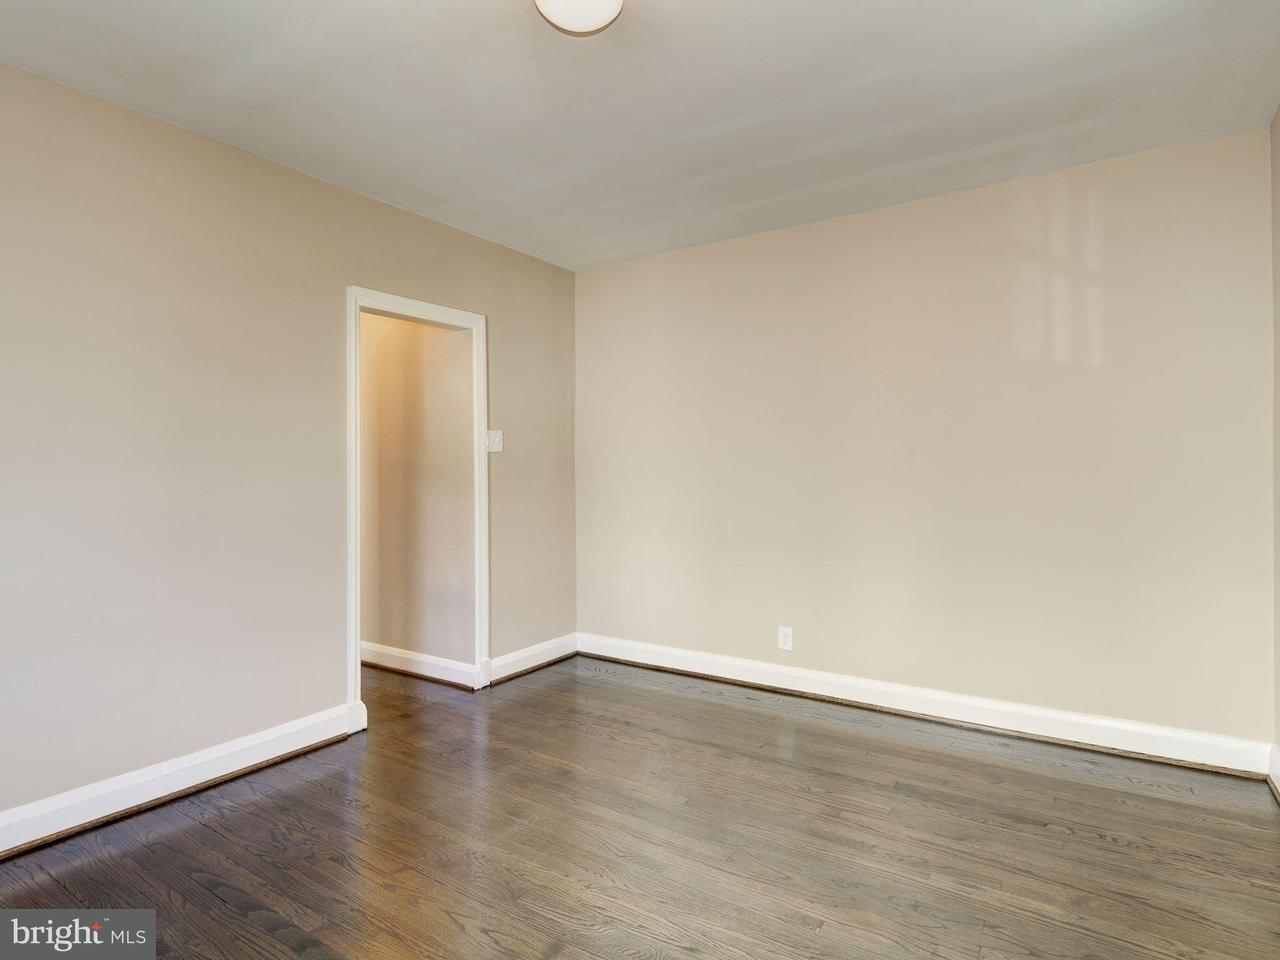 Other Residential for Rent at 2816 Fleetwood Ave Baltimore, Maryland 21214 United States